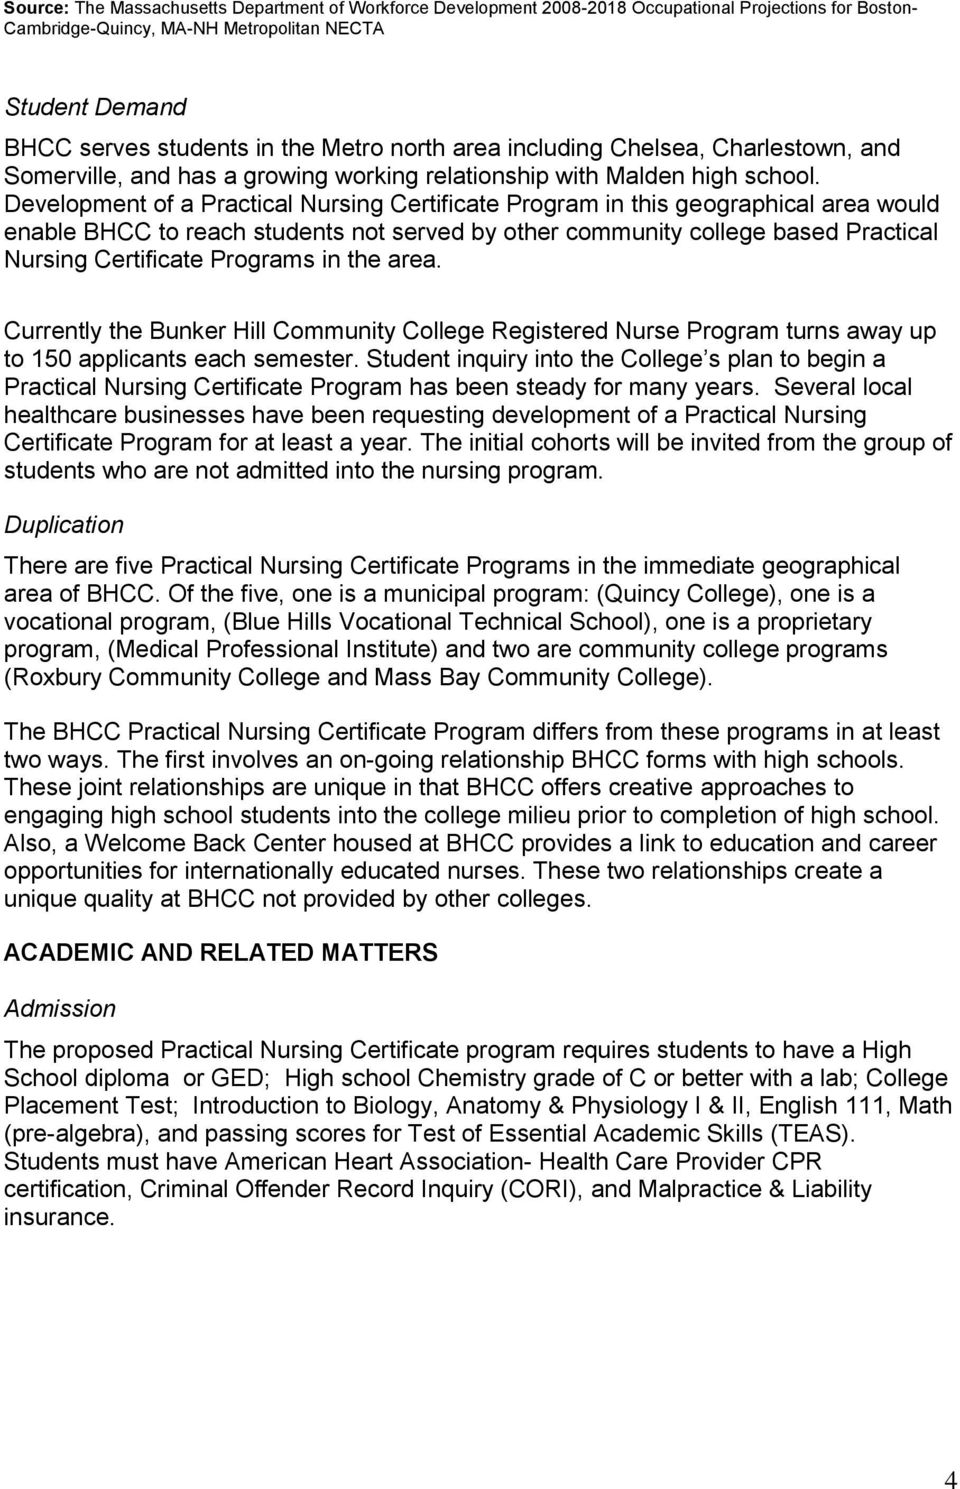 Development of a Practical Nursing Certificate Program in this geographical area would enable BHCC to reach students not served by other community college based Practical Nursing Certificate Programs